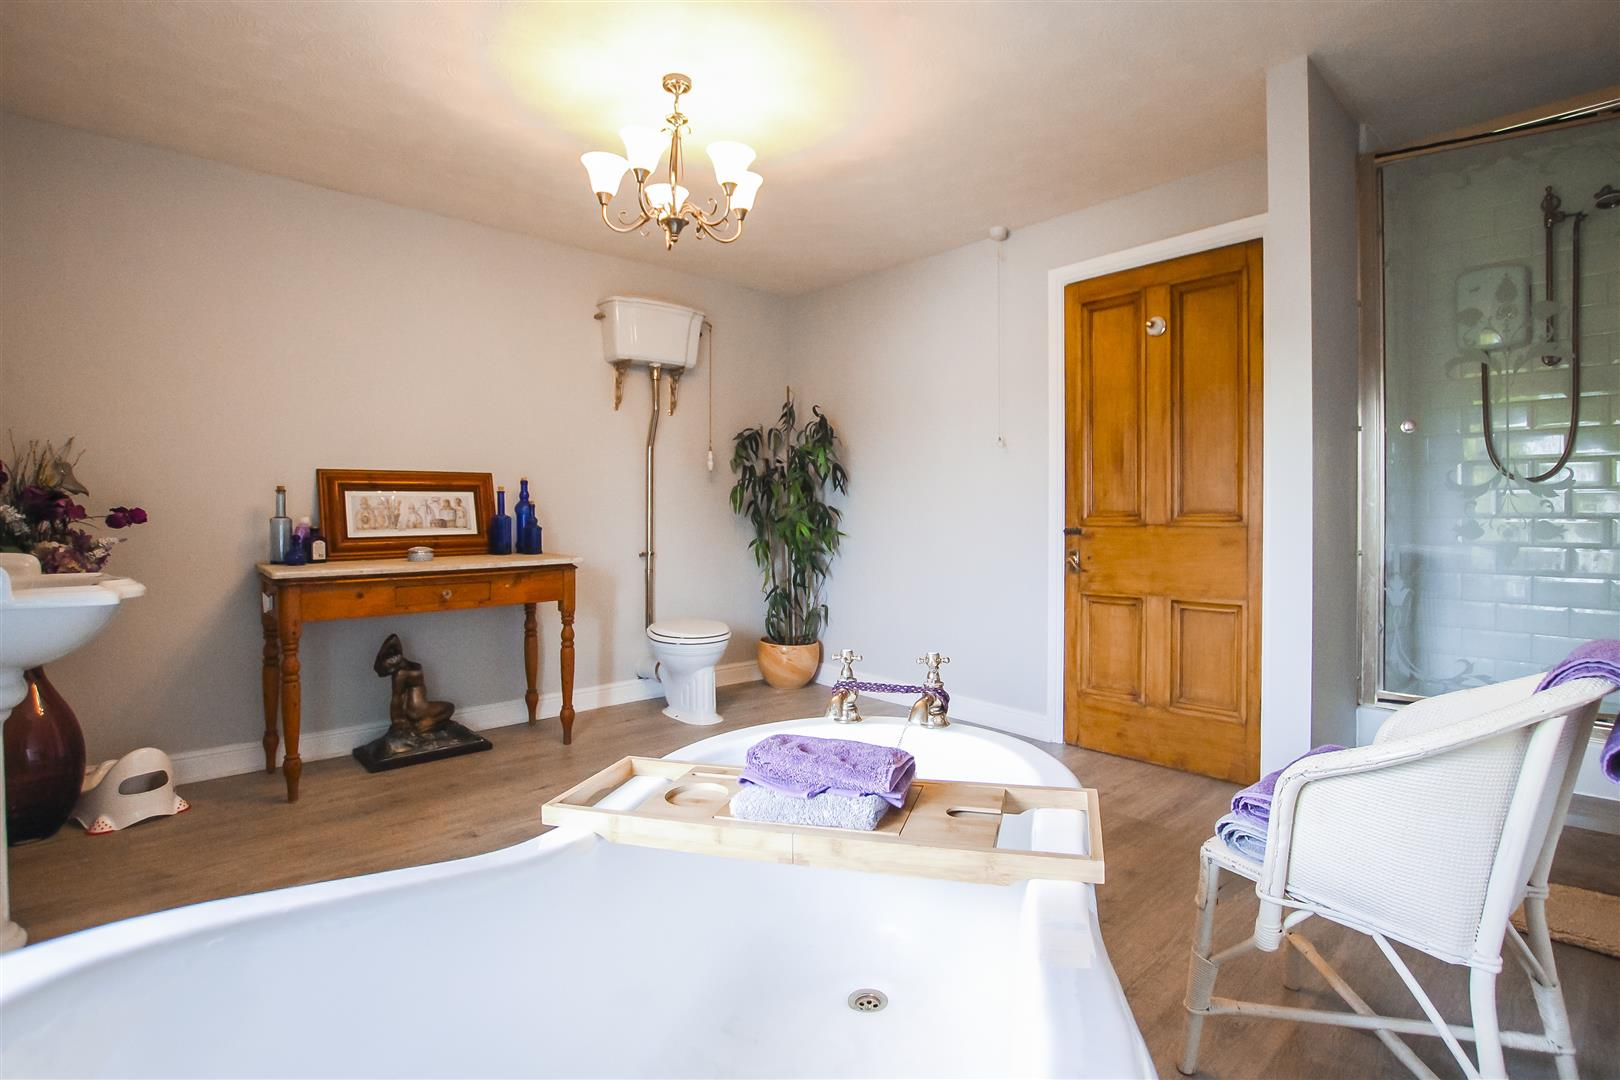 5 Bedroom Barn Conversion For Sale - Image 34